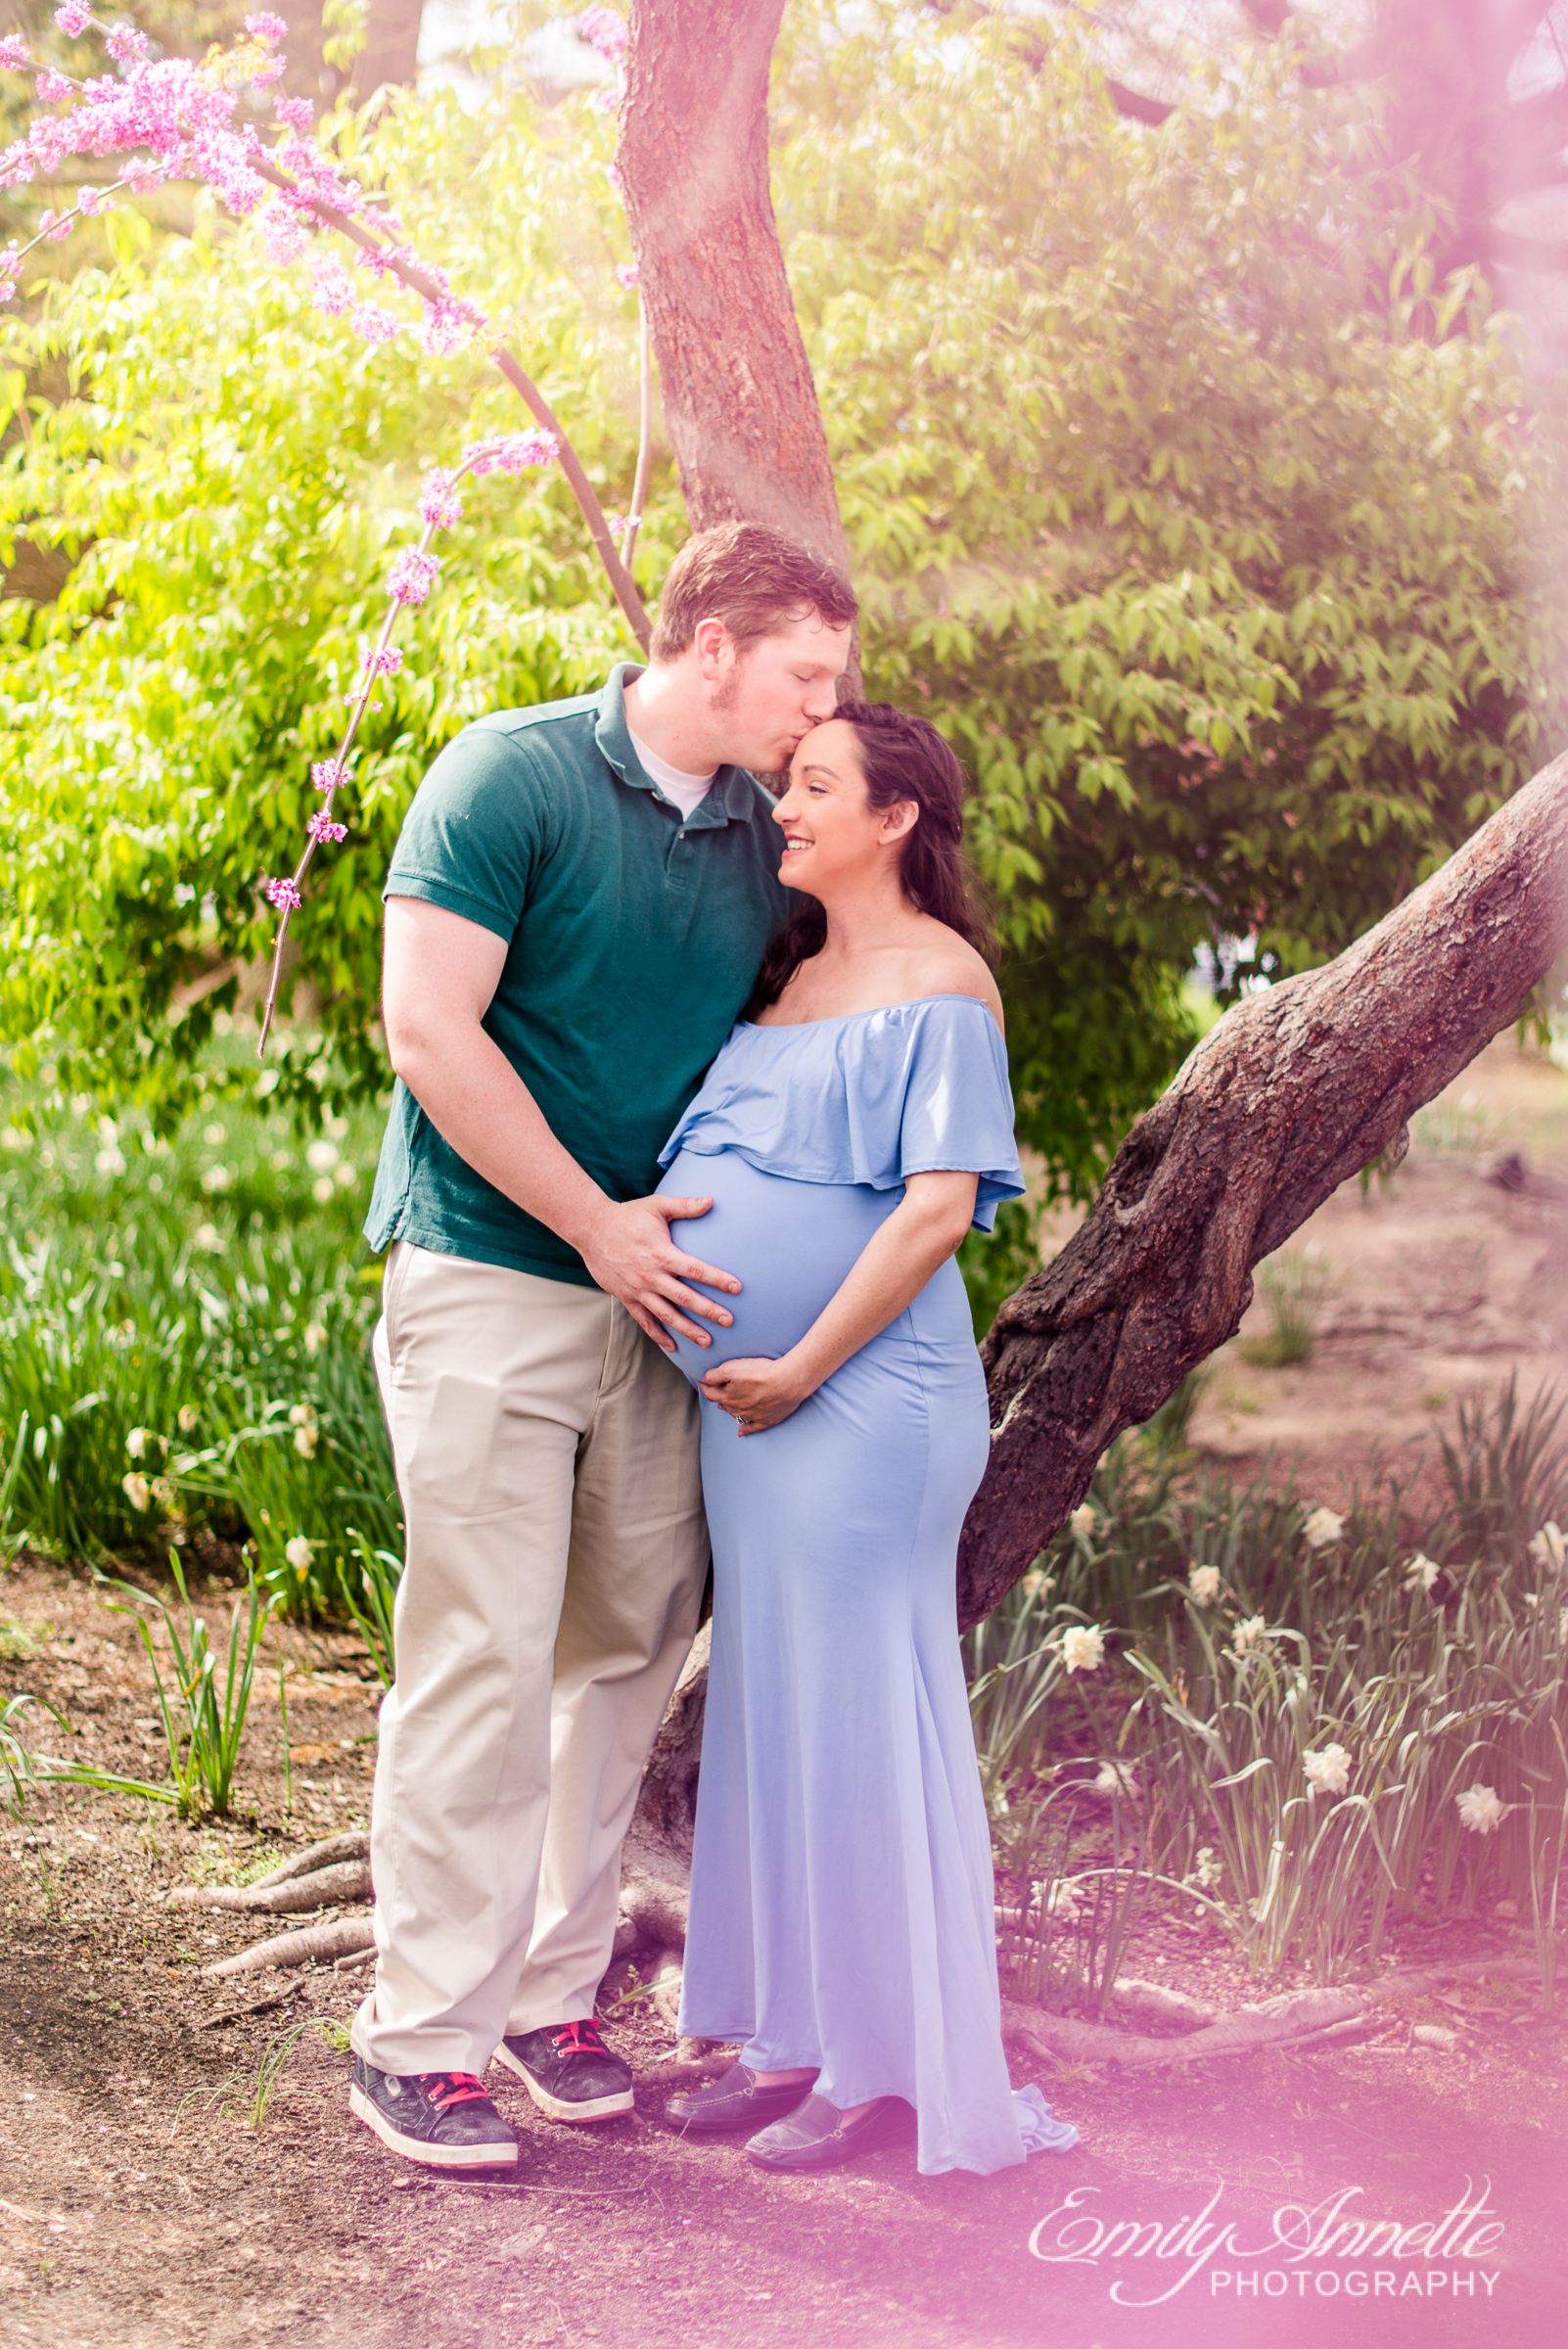 A pregnant woman poses with her husband for spring maternity photos at Waterfront Park in Old Town Alexandria wearing a romantic blue dress